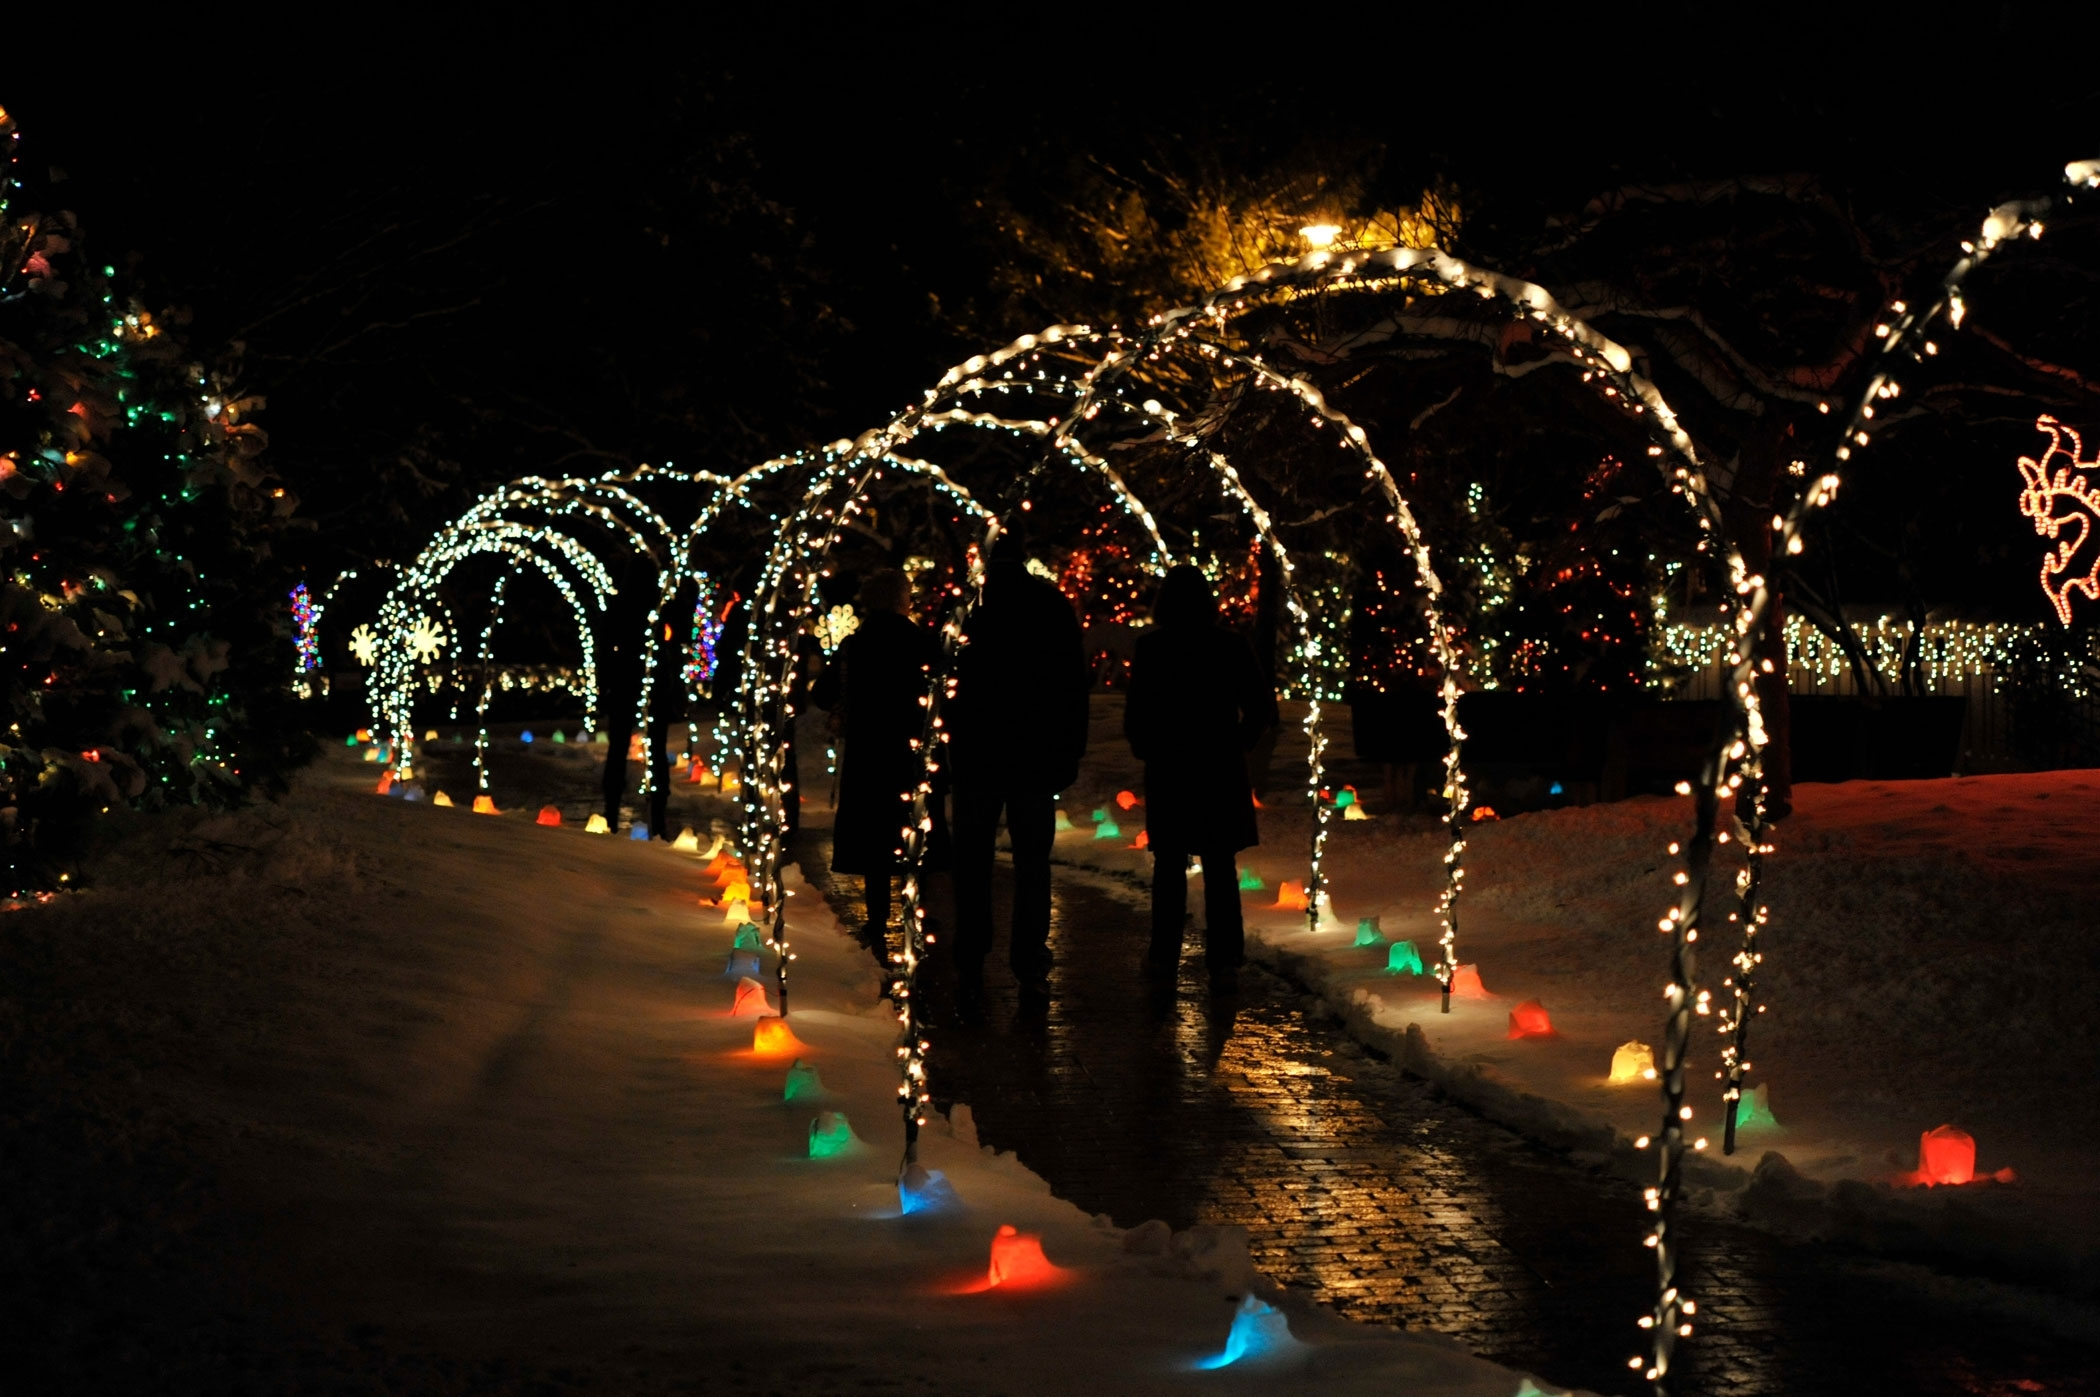 Janesville Images | Rotary Botanical Gardens - Rotary Botanical throughout Rotary Garden Light Show Janesville Wi